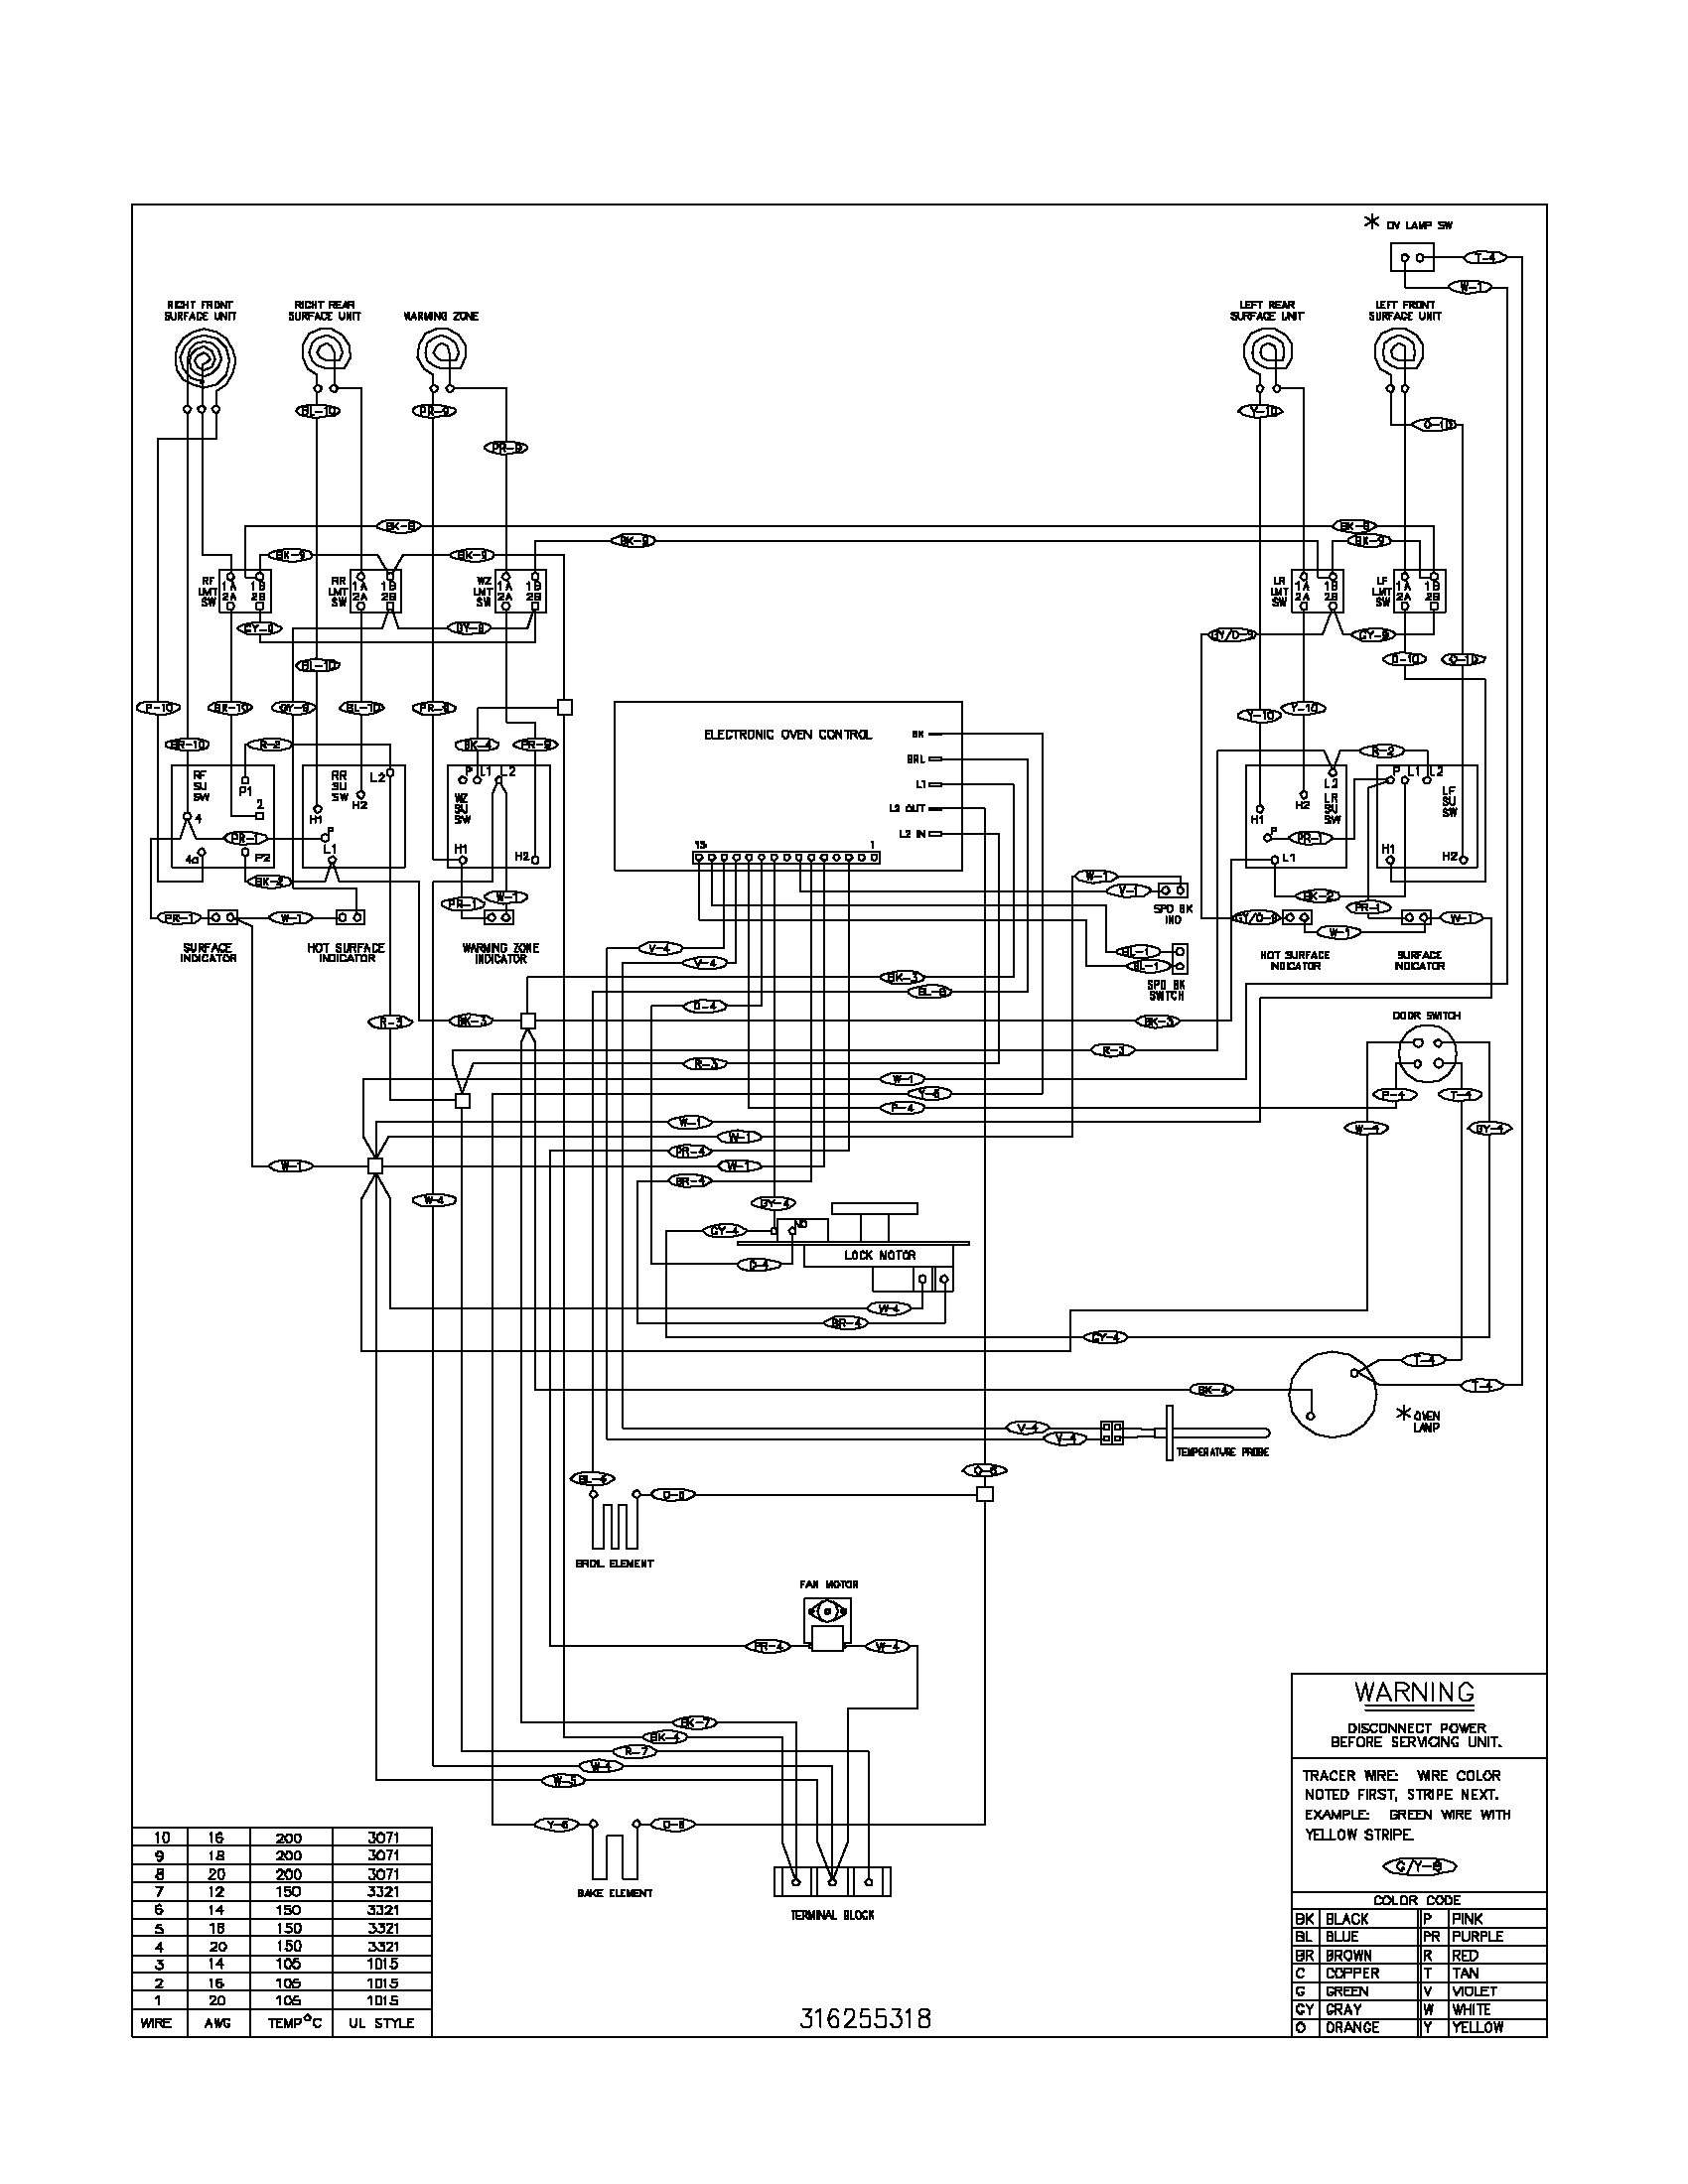 Diagram Wiring Diagram For A Frigidaire Oven Full